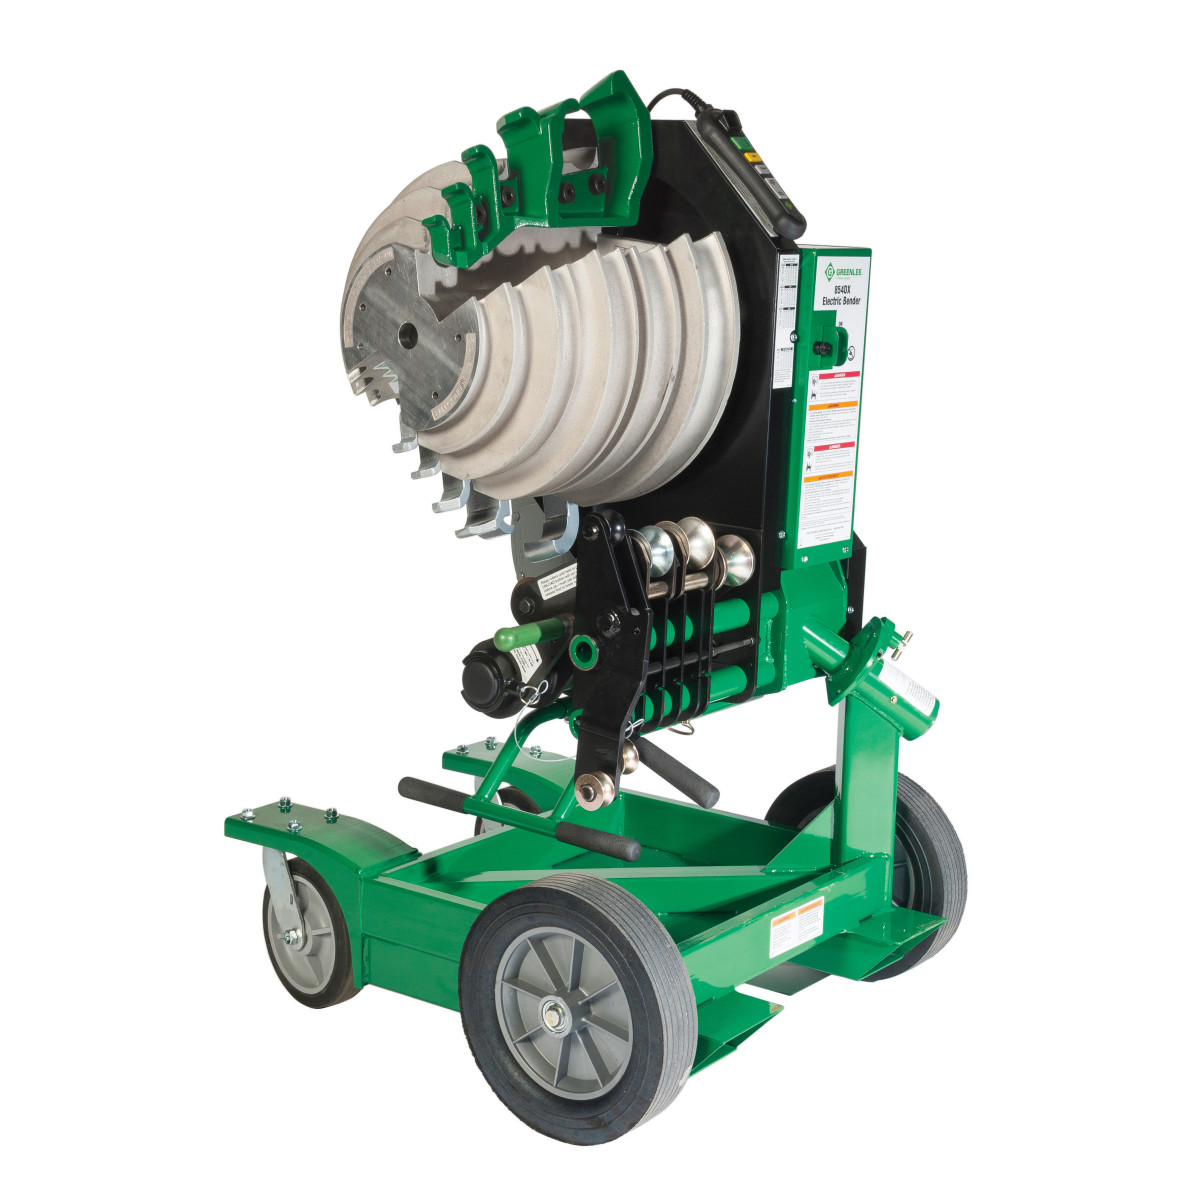 Greenlee 854DX BENDER, ELECTRIC CONDUIT (854DX)